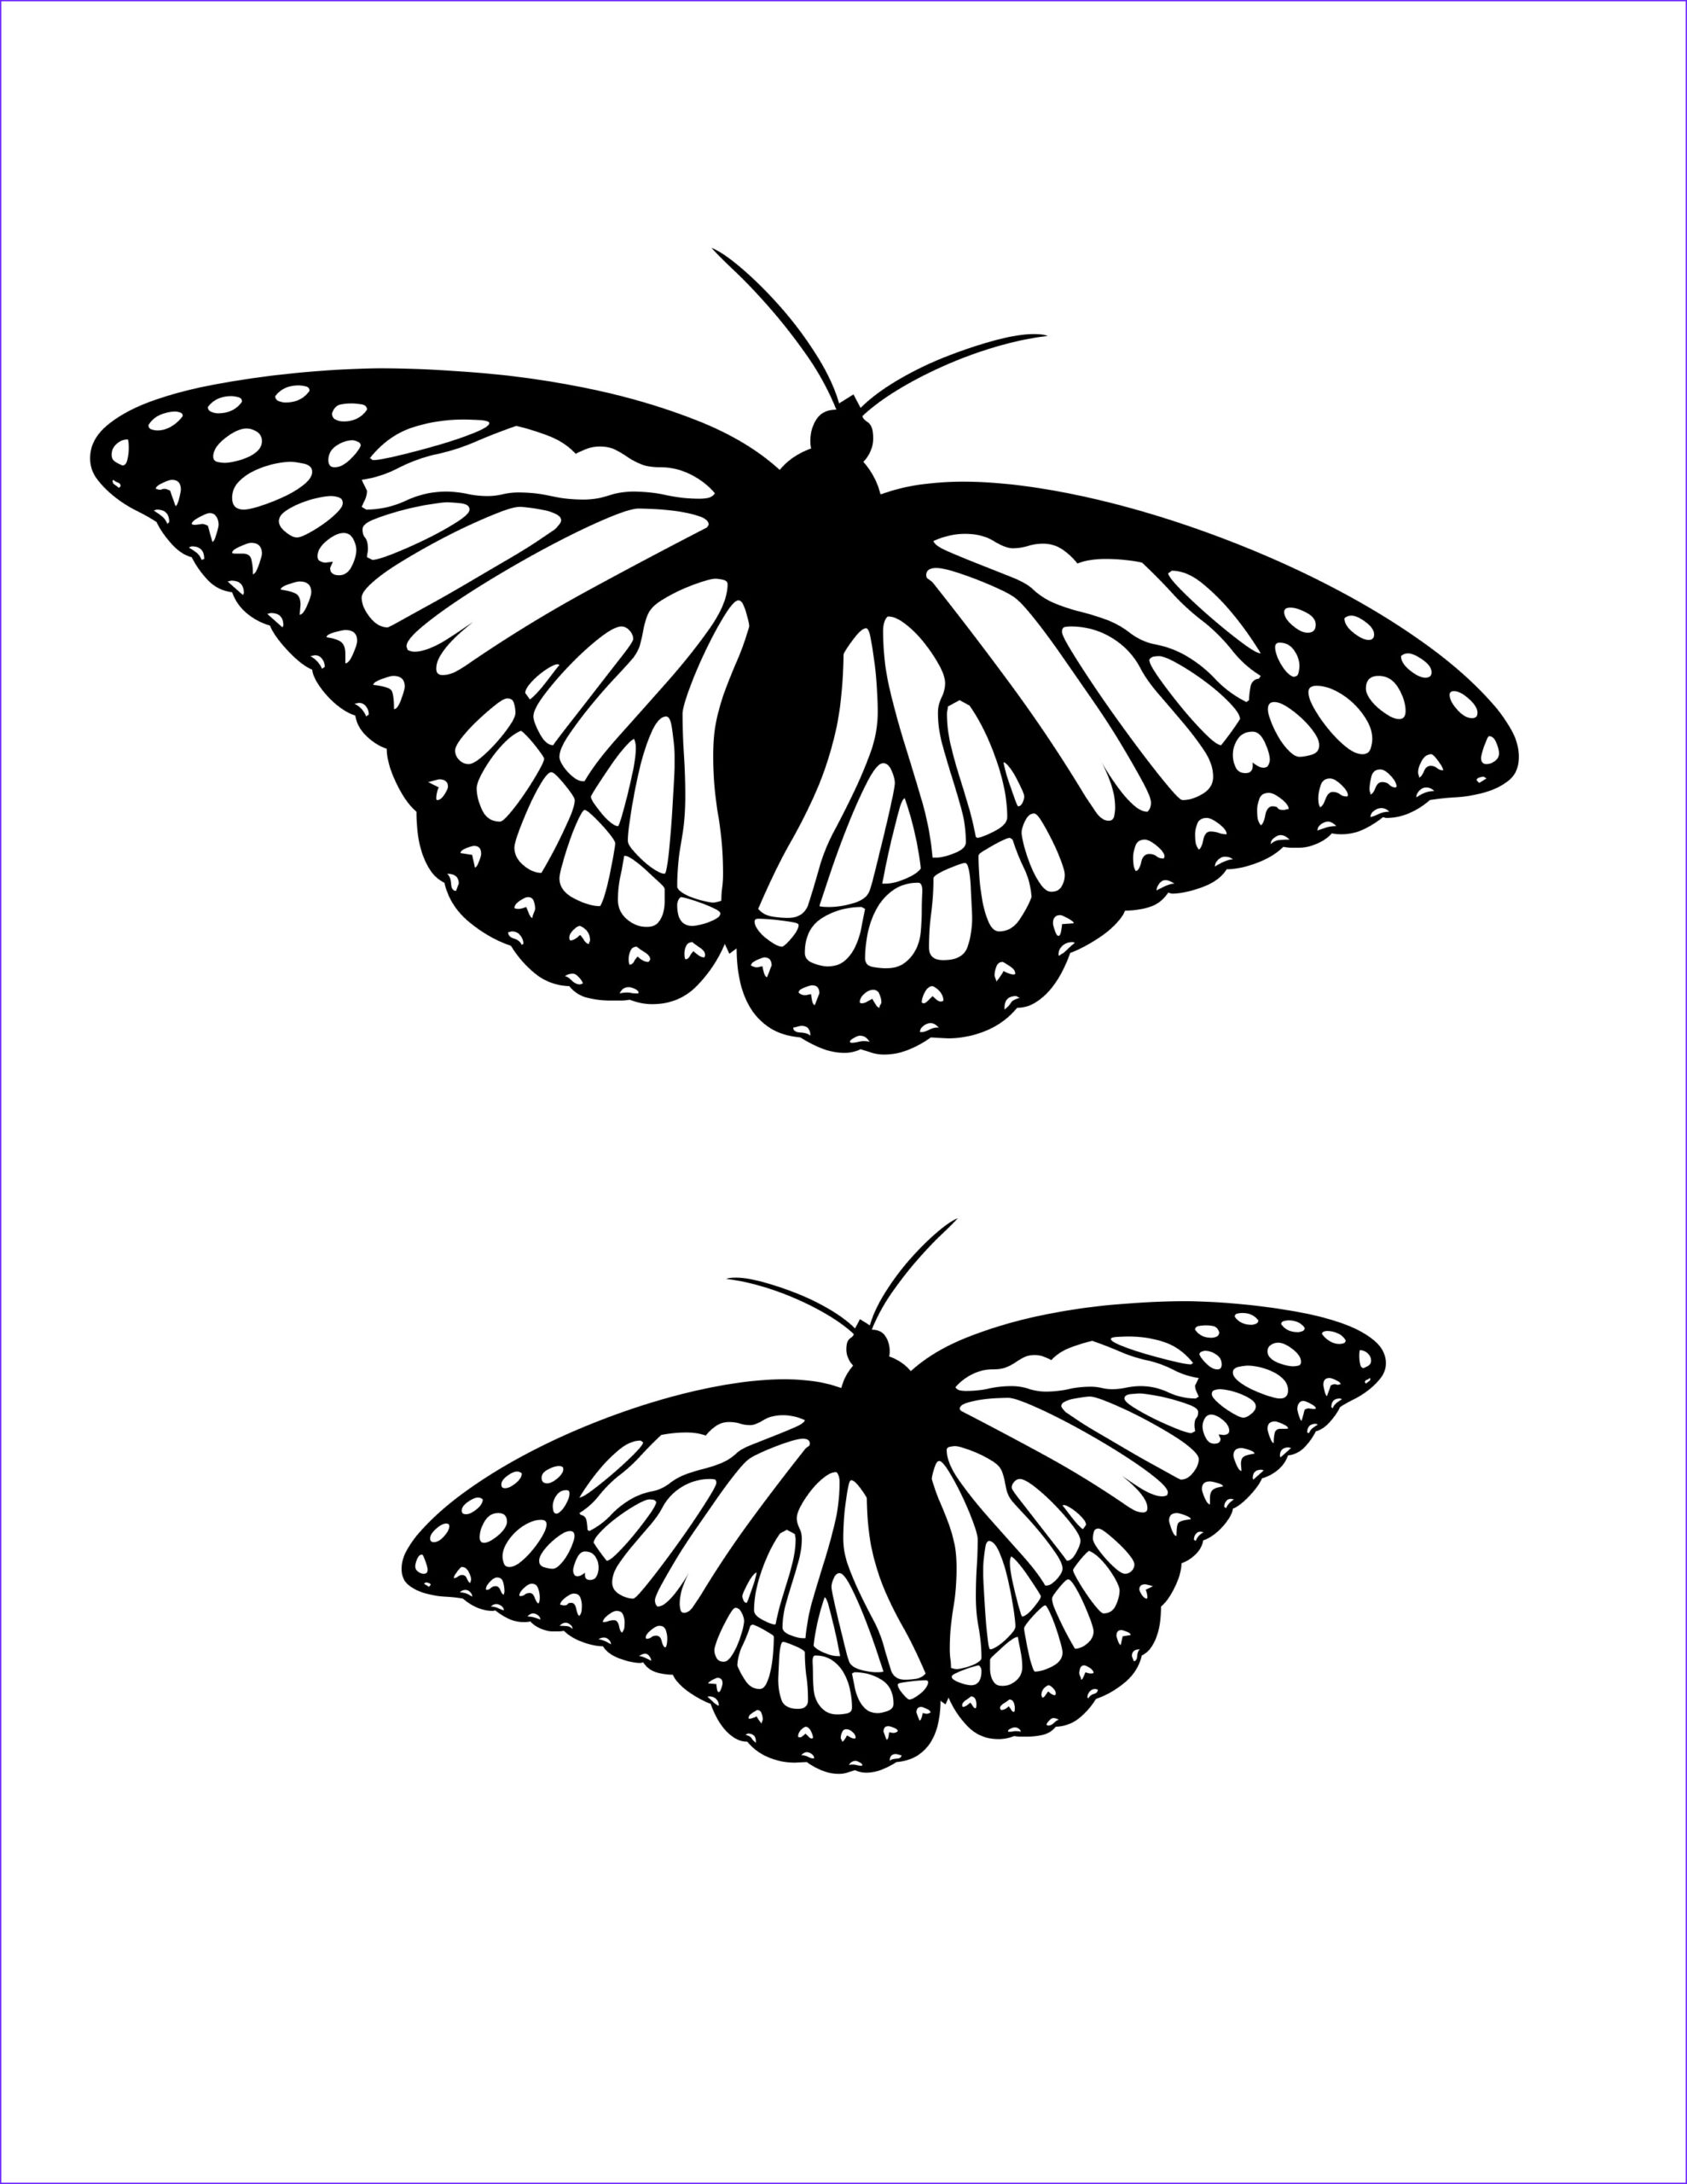 Butterfly Coloring Sheet Unique Image butterfly Coloring Pages